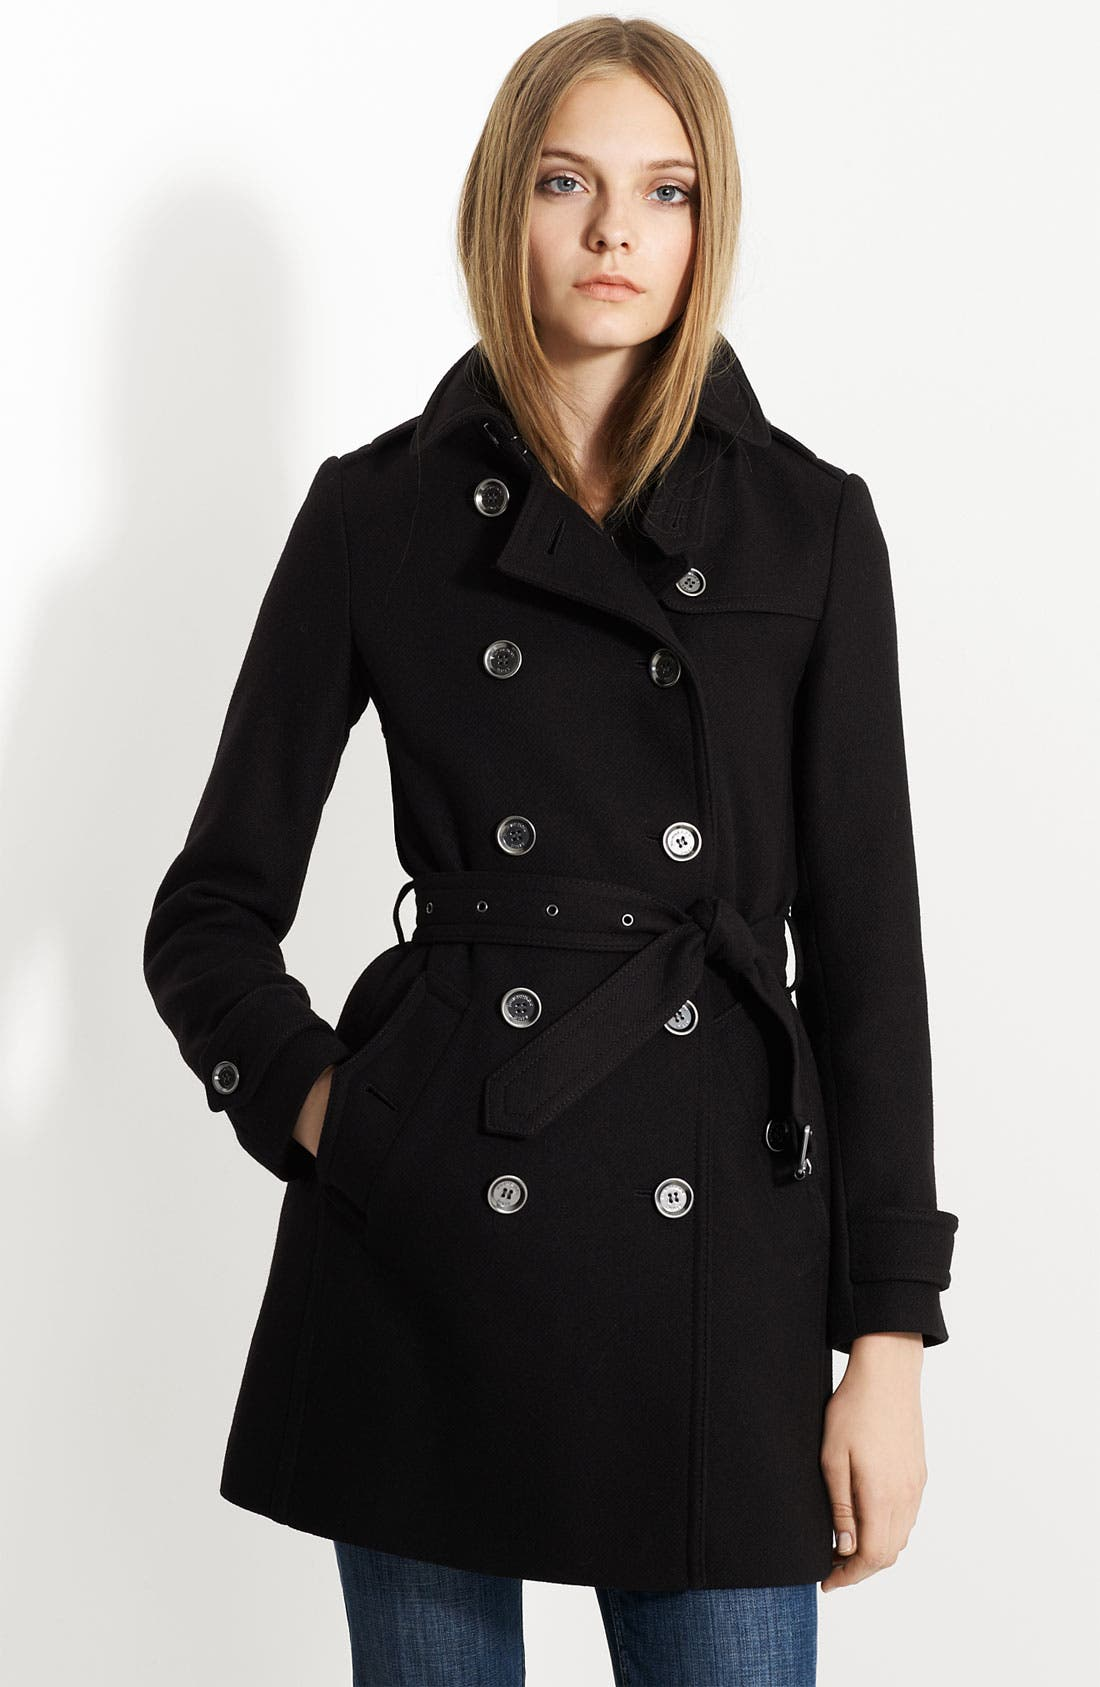 'Balmoral' Wool Blend Trench Coat,                             Main thumbnail 1, color,                             001